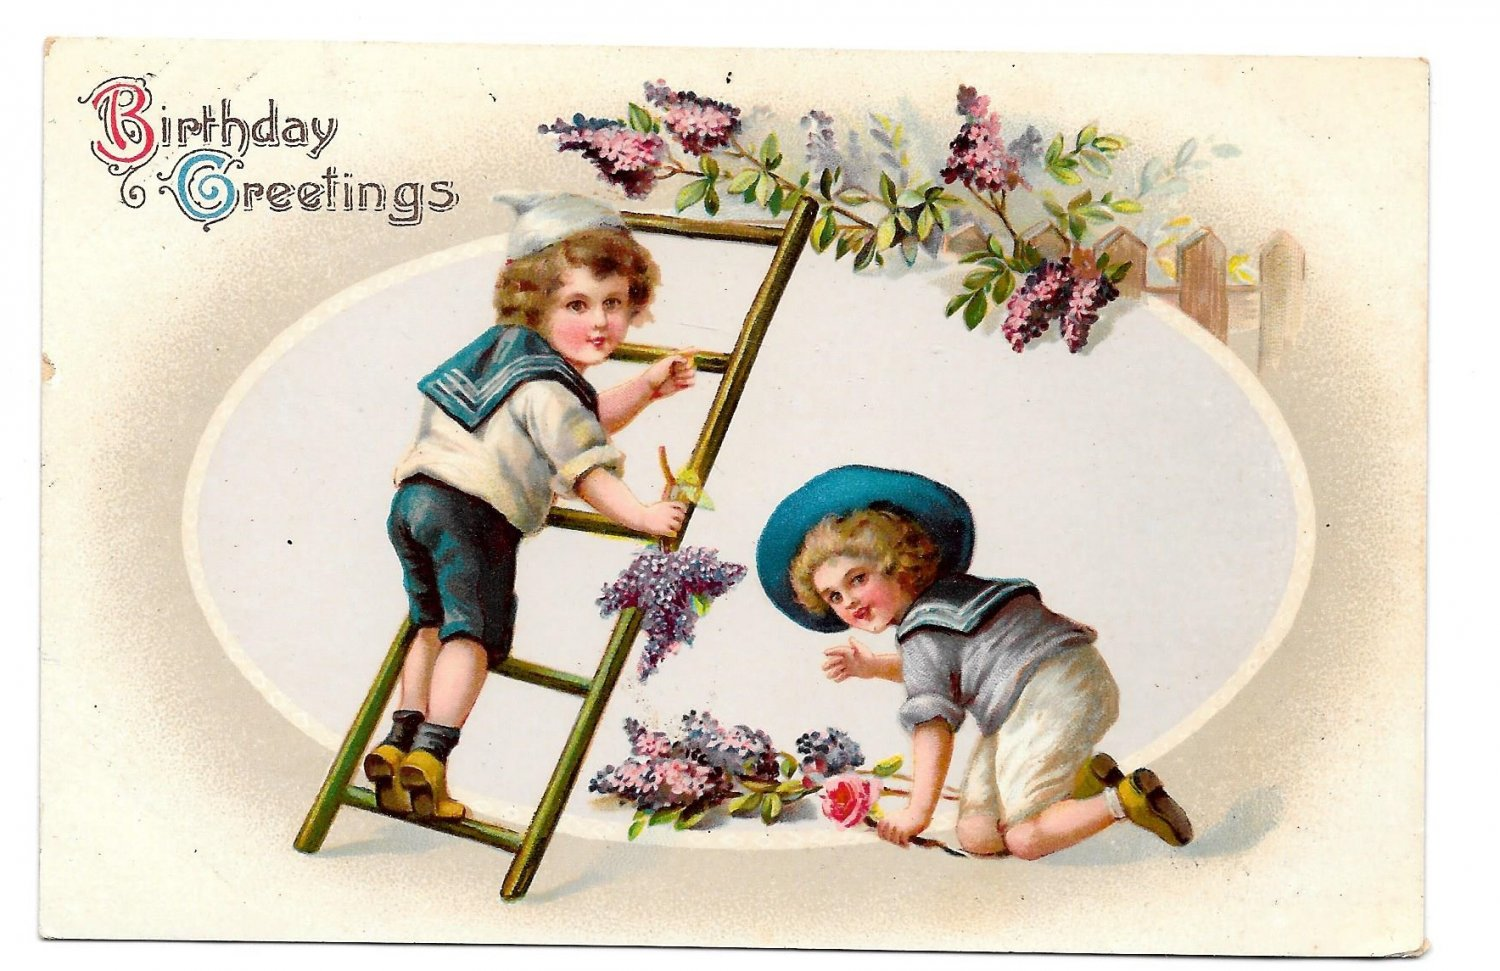 Birthday Greetings Boys in Victorian Sailor Suits Picking Grapes Vntg 1913 Postcard